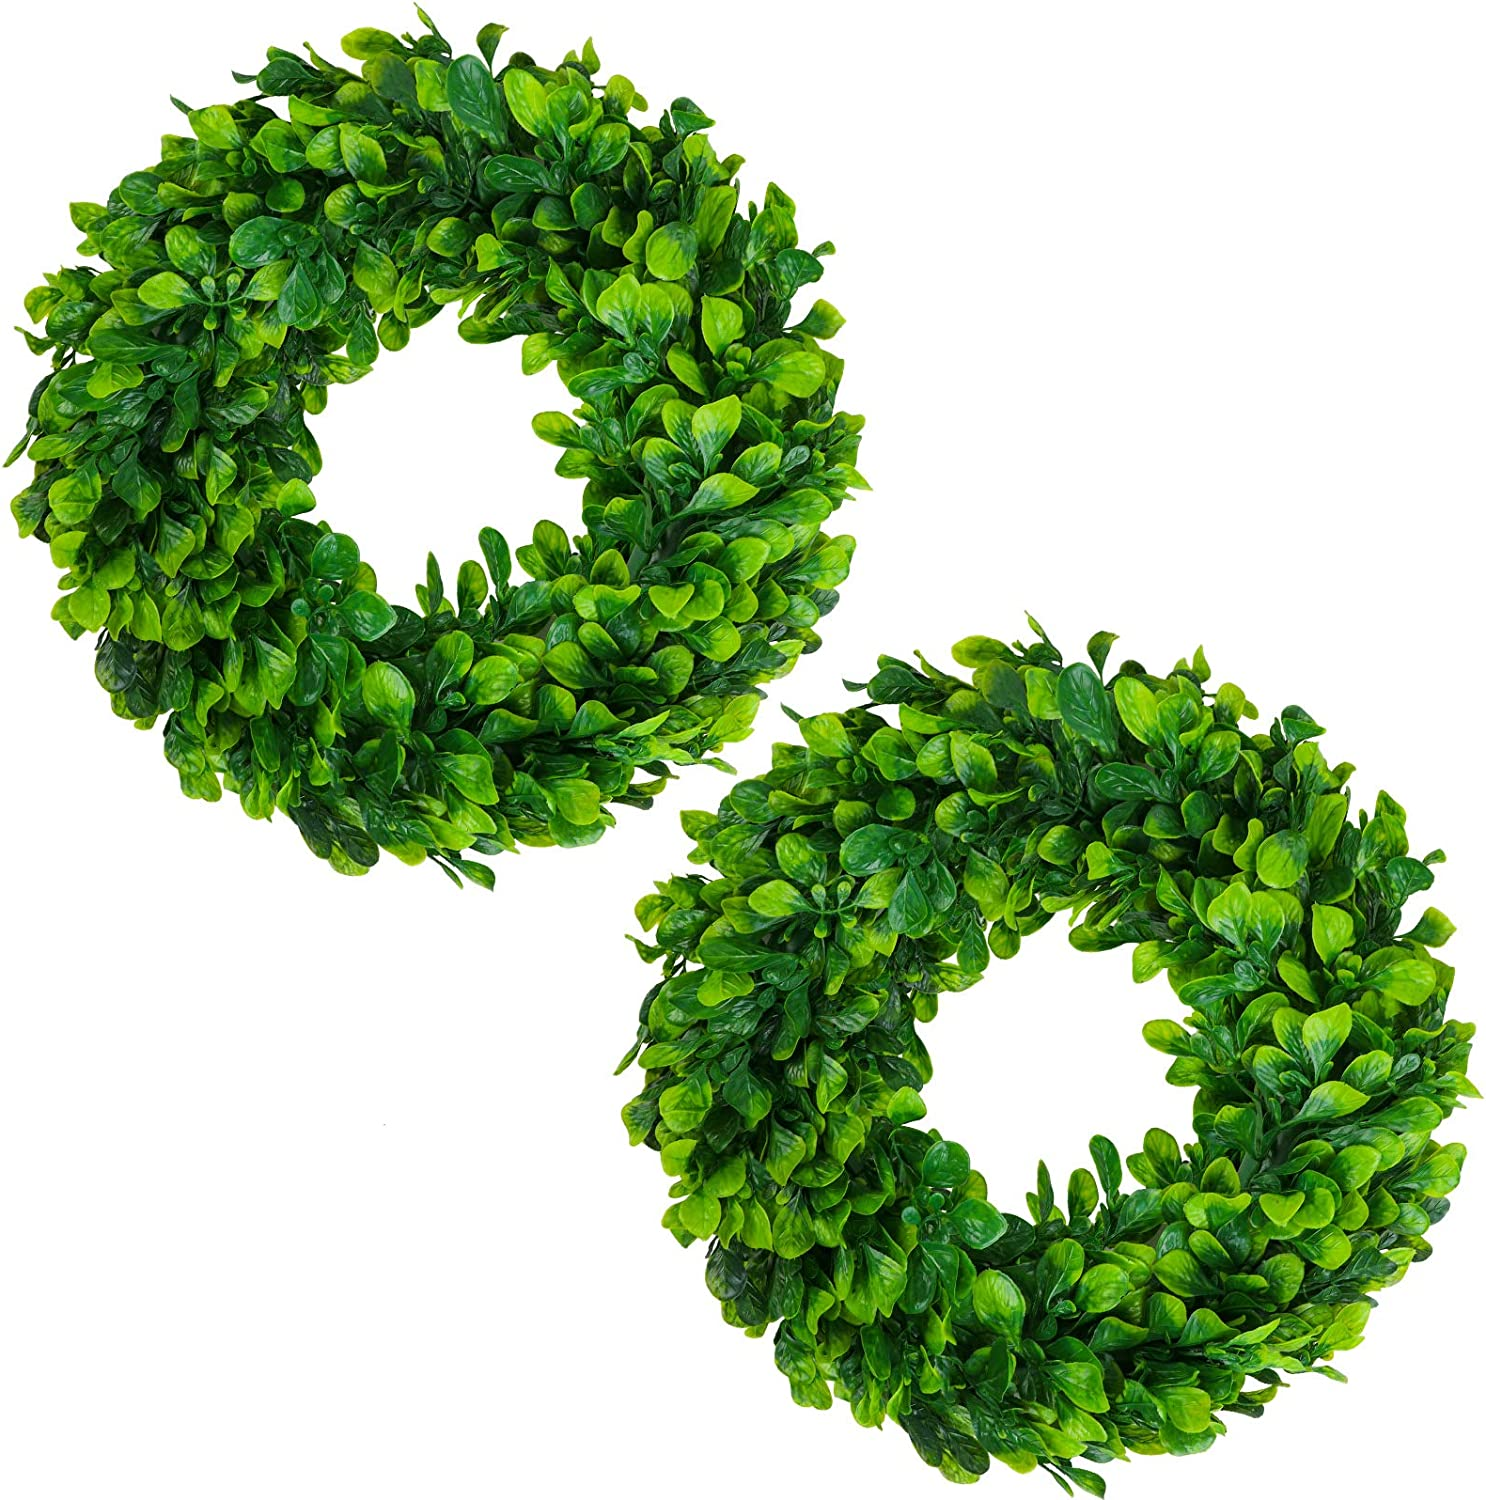 Ruisita 2 Pack Artificial Green Leaves Wreath Front Door Wall Hanging Boxwood Wreath for Home Wedding Party Decoration, Spring Summer Christmas Decor